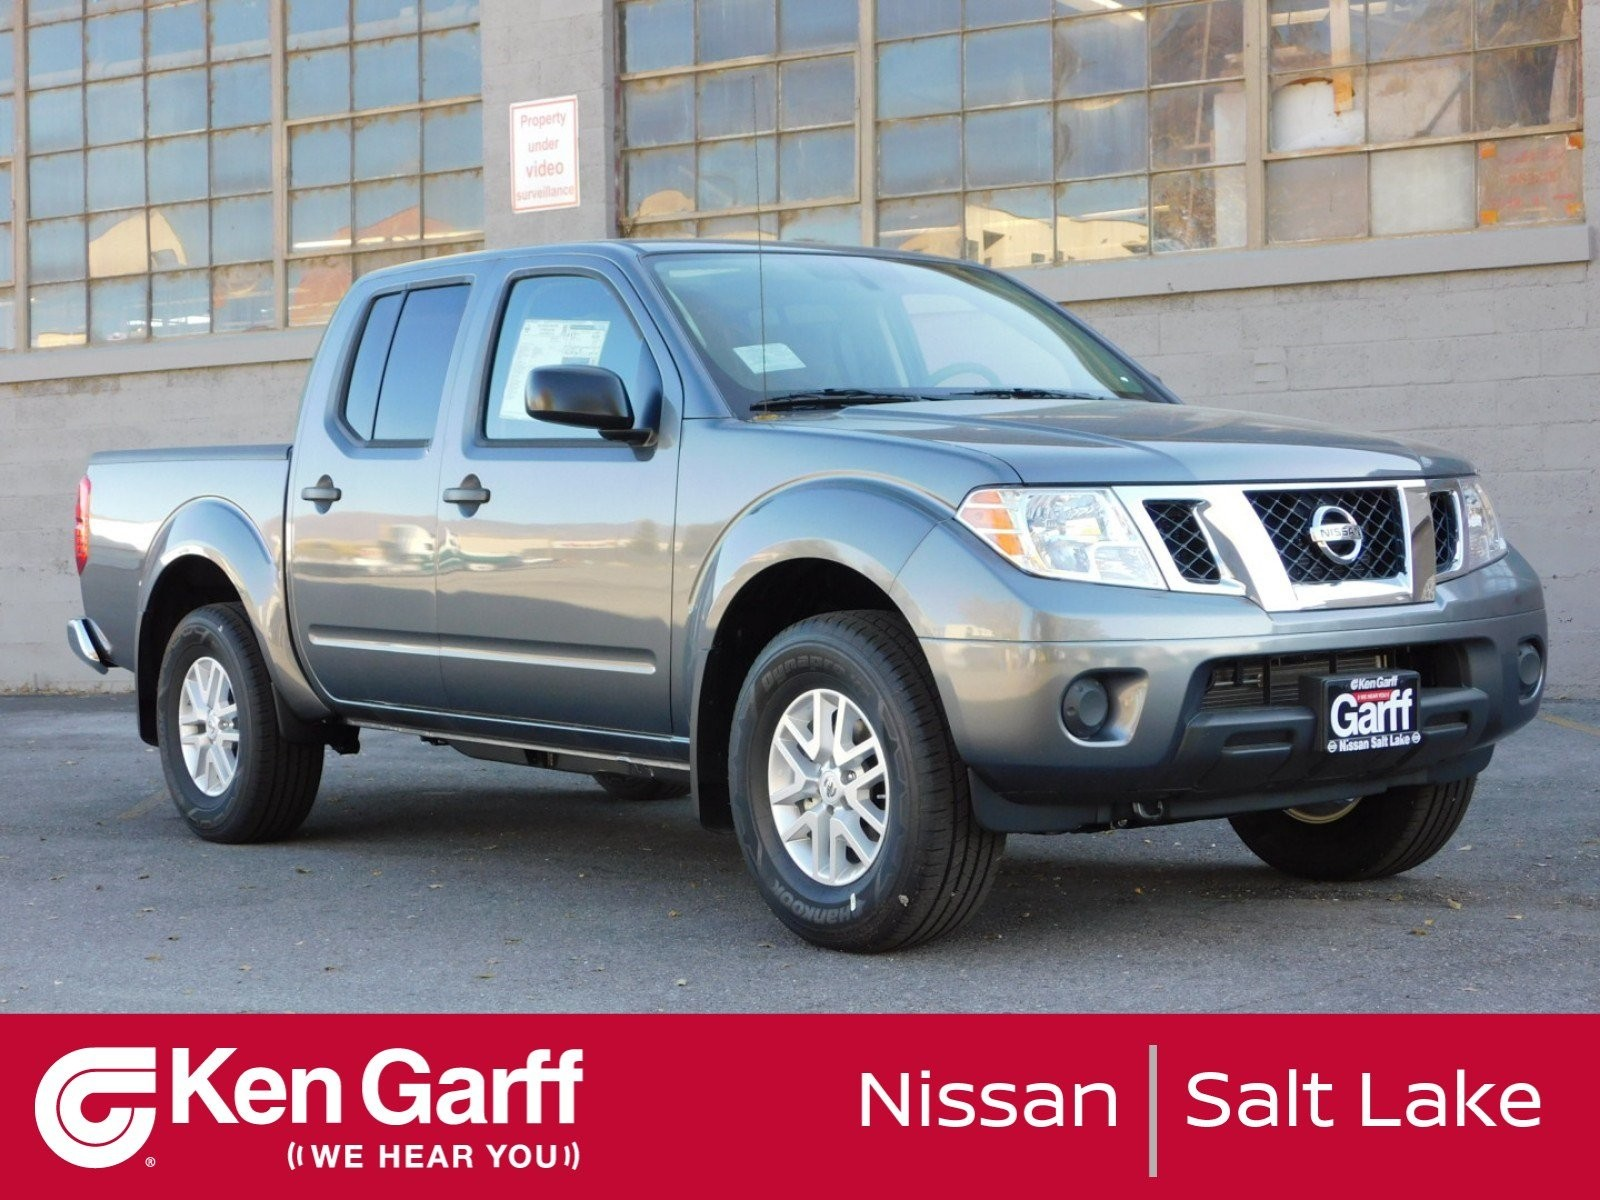 Nissan Truck Parts Diagram New 2019 Nissan Frontier Sv Crew Cab Pickup In Salt Lake City Of Nissan Truck Parts Diagram New 2018 Nissan Frontier S Crew Cab Pickup In orem 2n